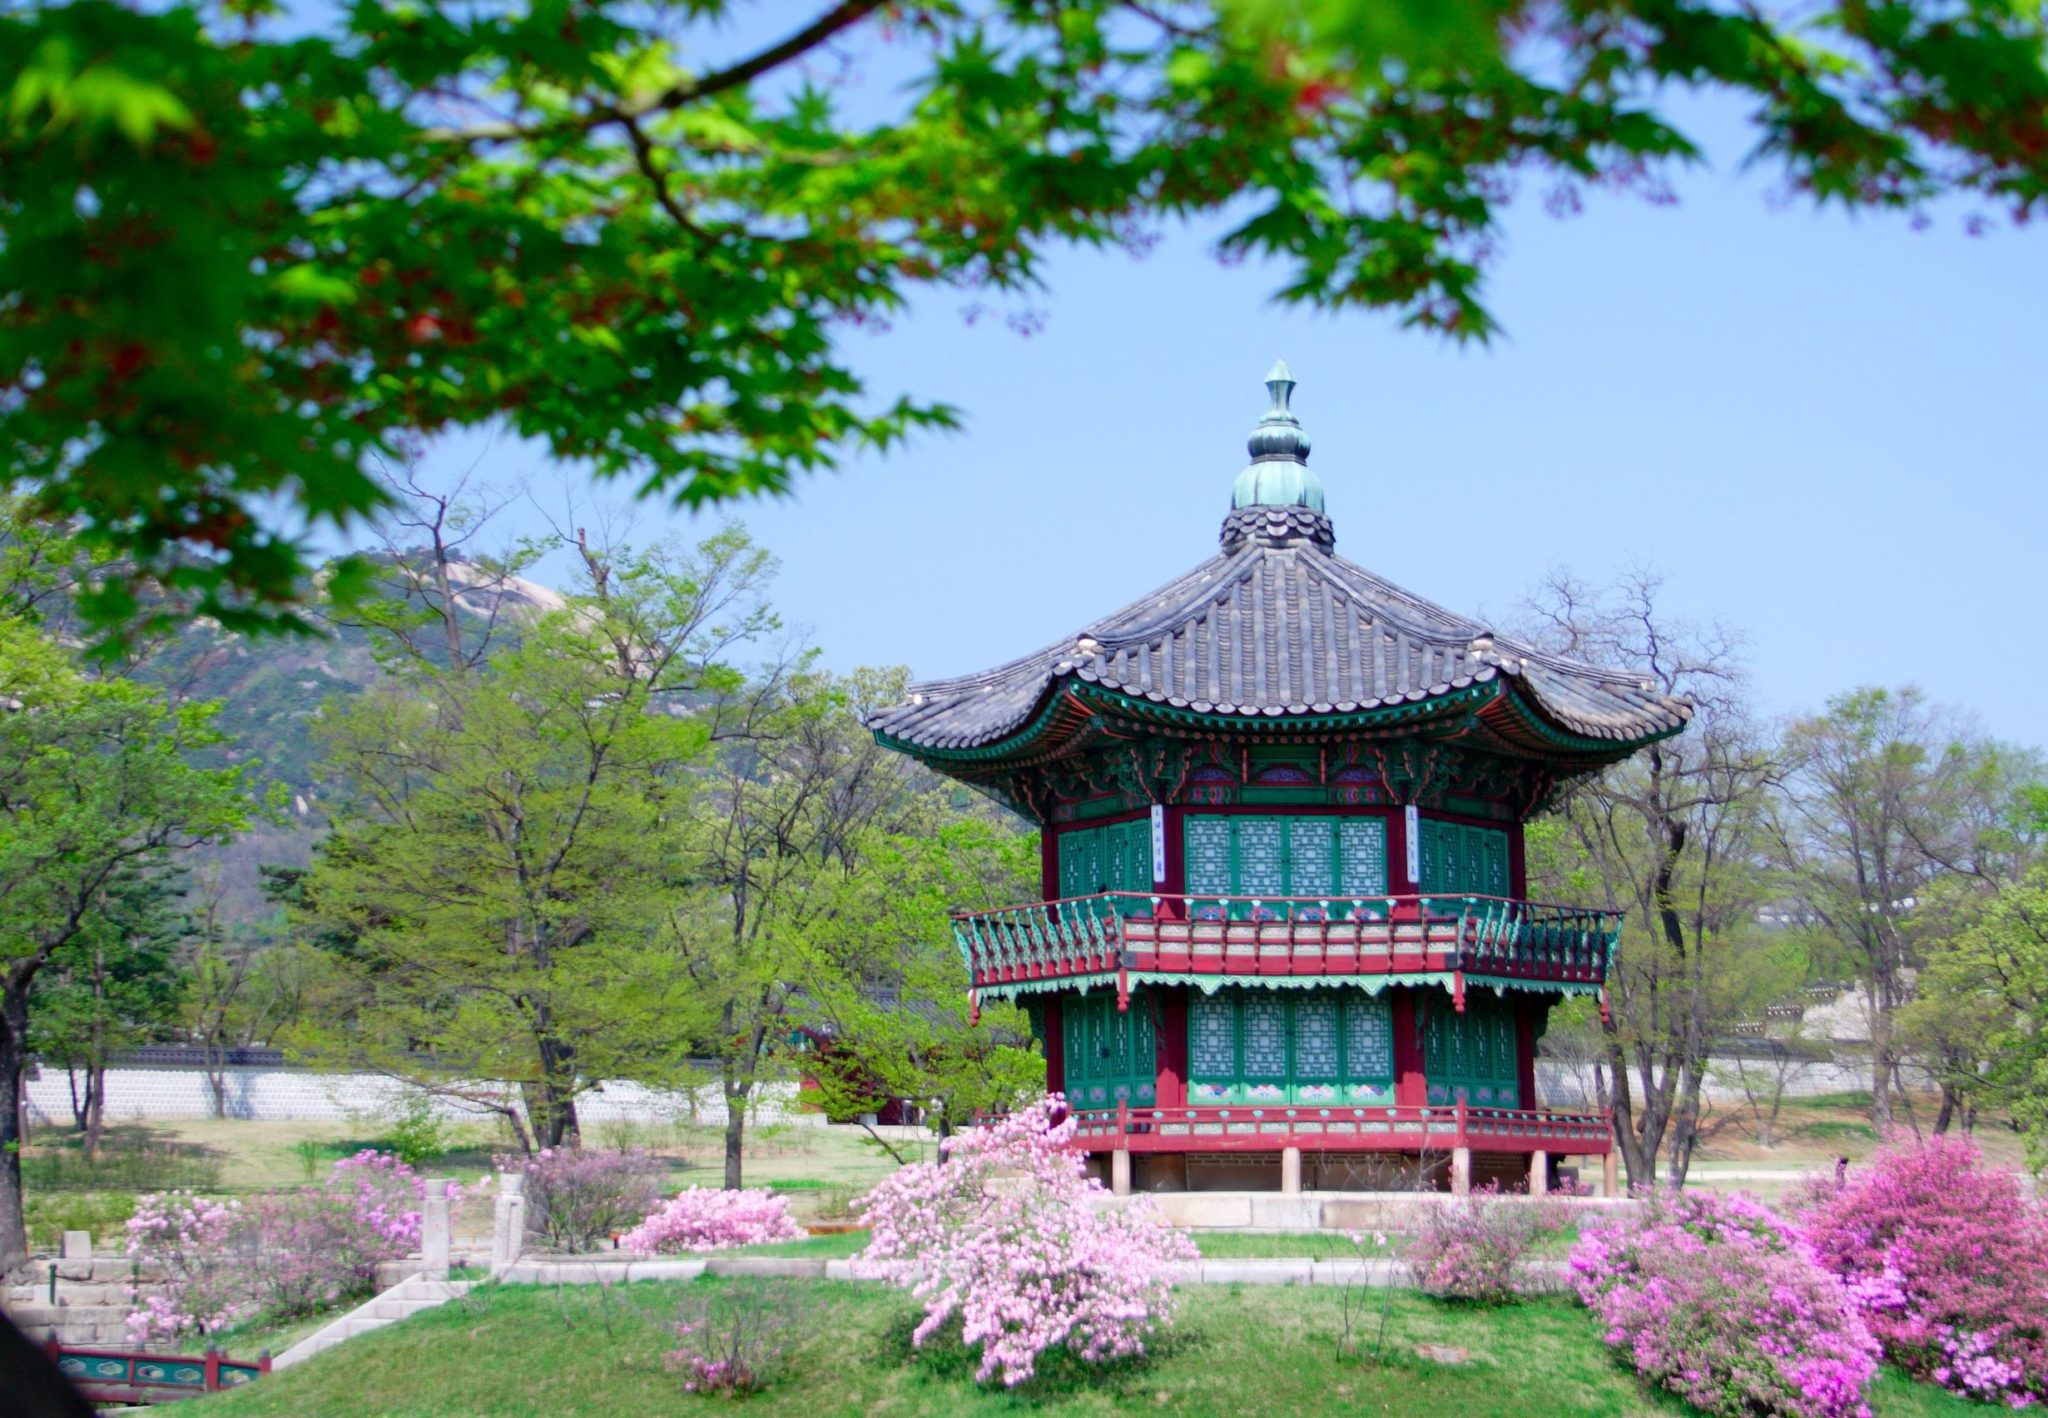 Kyoungbok Palace in Seoul, South Korea